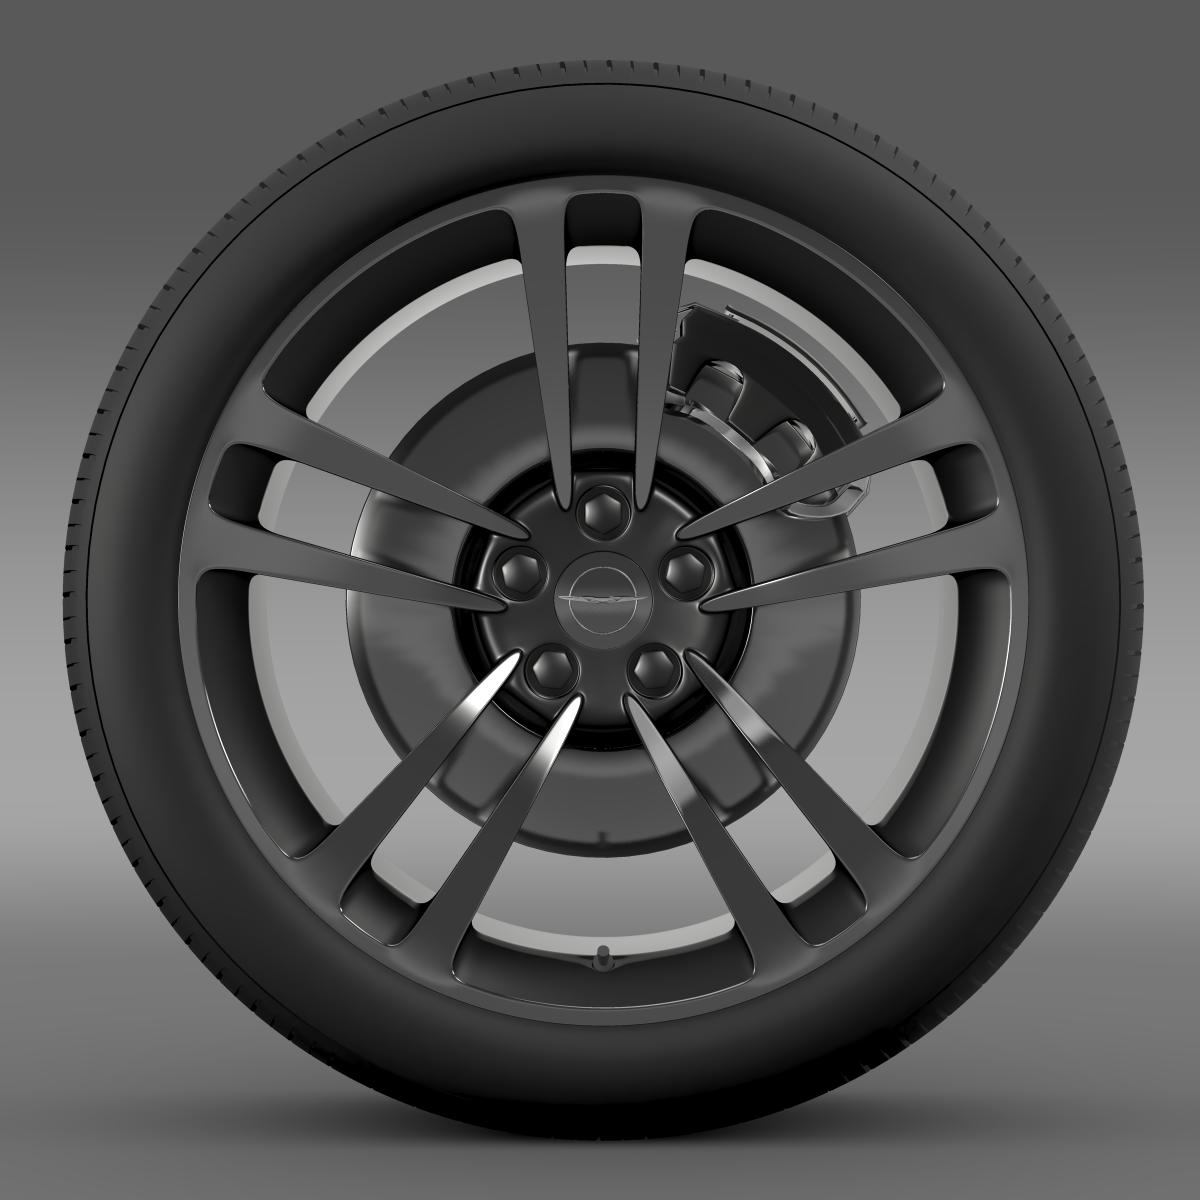 chrysler 300 srt8 core wheel 3d model 3ds max fbx c4d lwo ma mb hrc xsi obj 210627